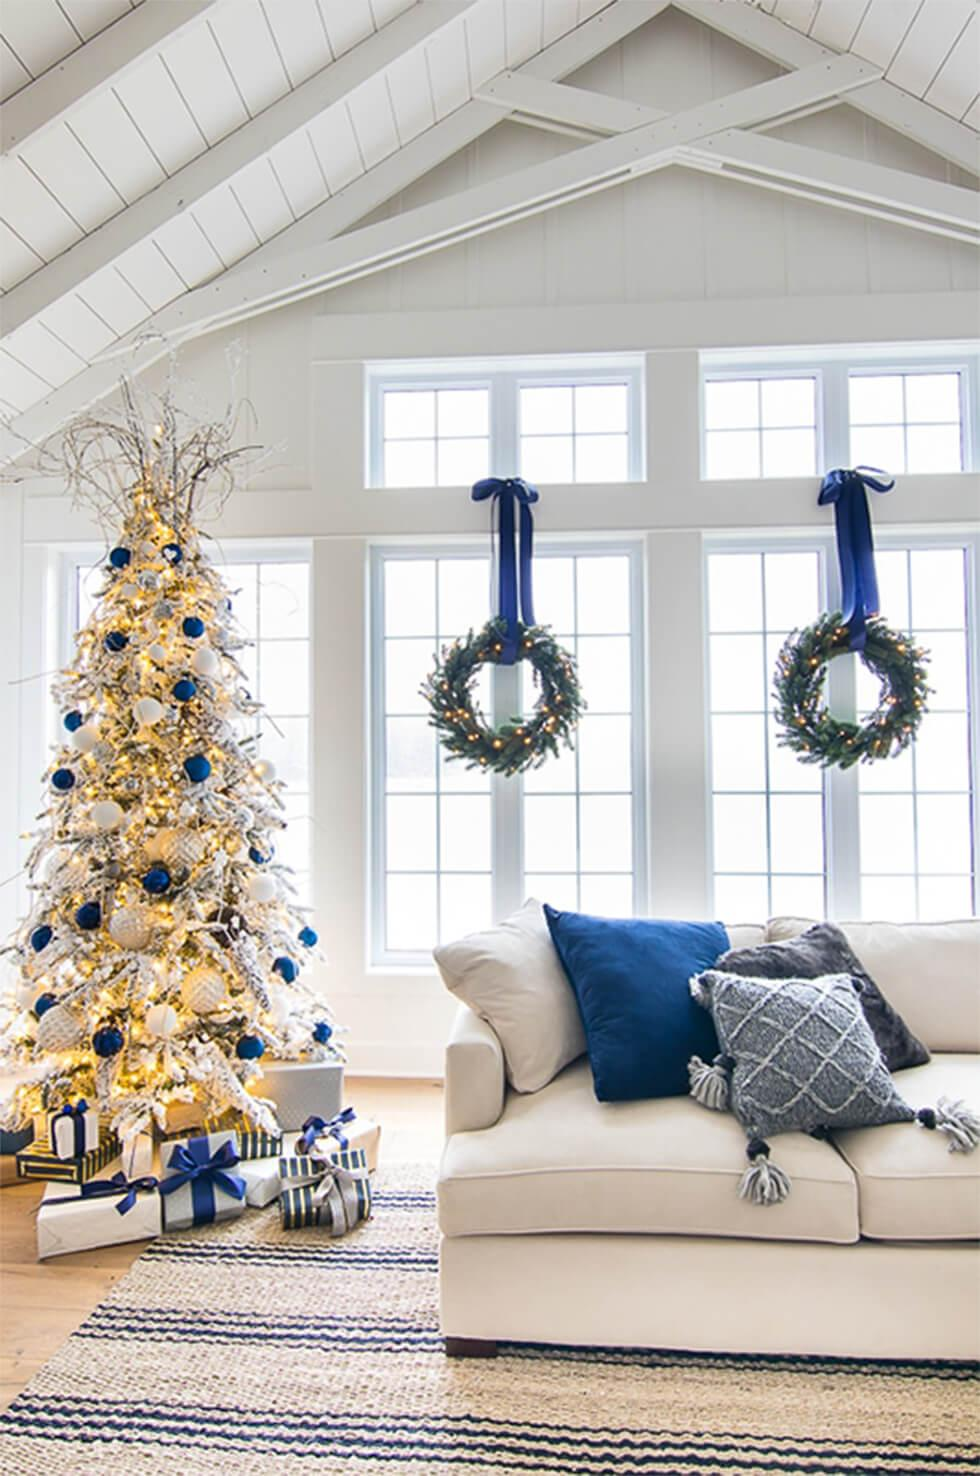 White Christmas living room with blue accents and decor